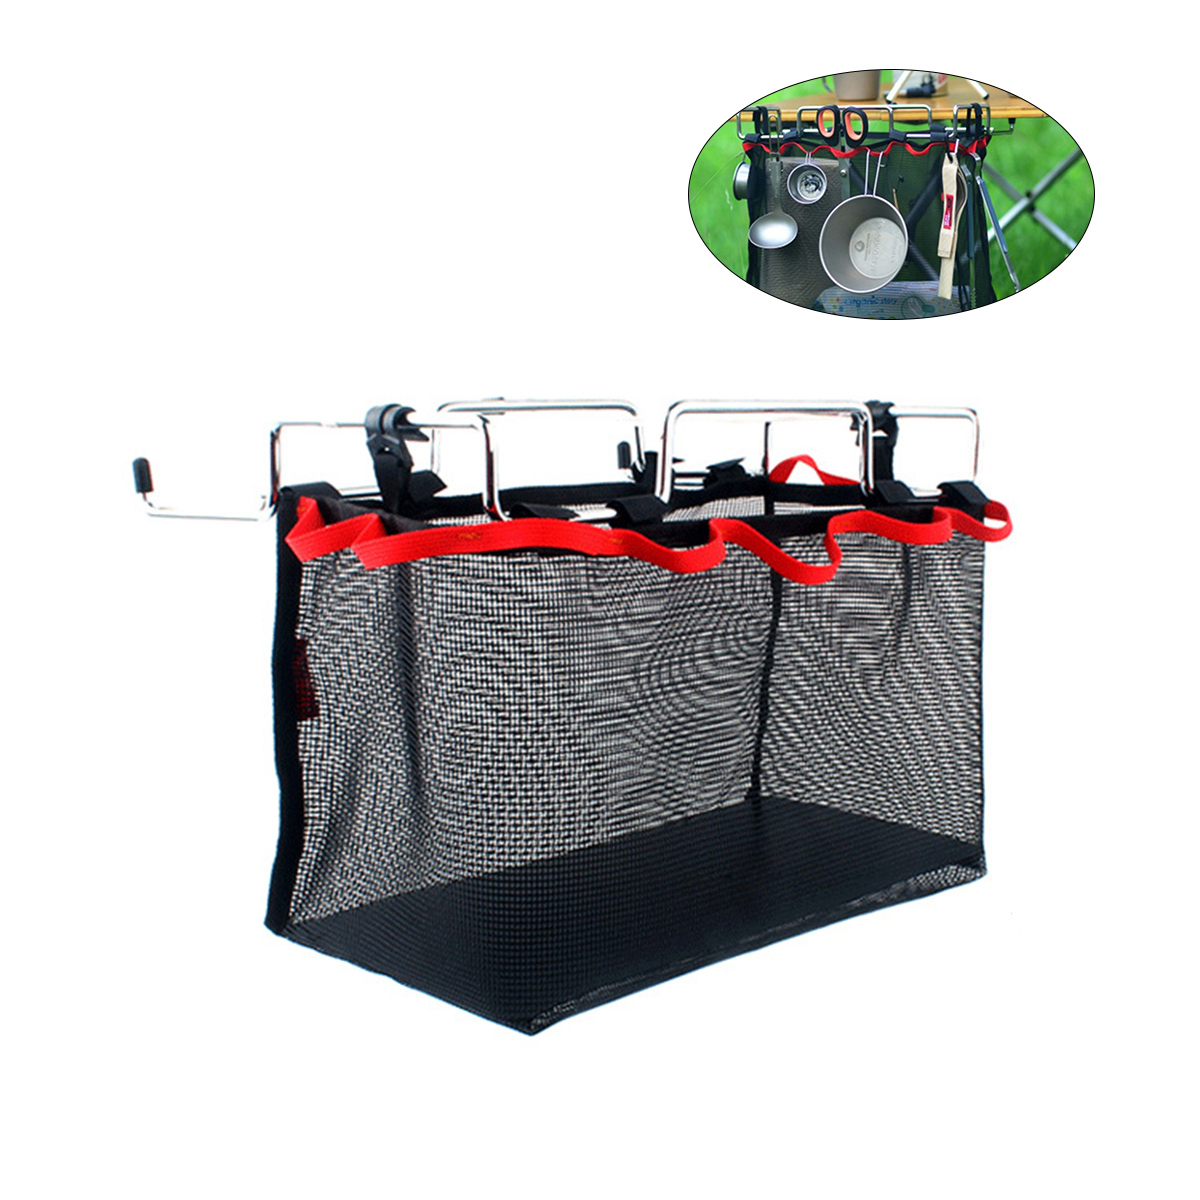 Campleader Outdoor Picnic Camping Storage Net Bag Stuff Storage Mesh Pack Kitchen Portable Folding Table Hanging Net